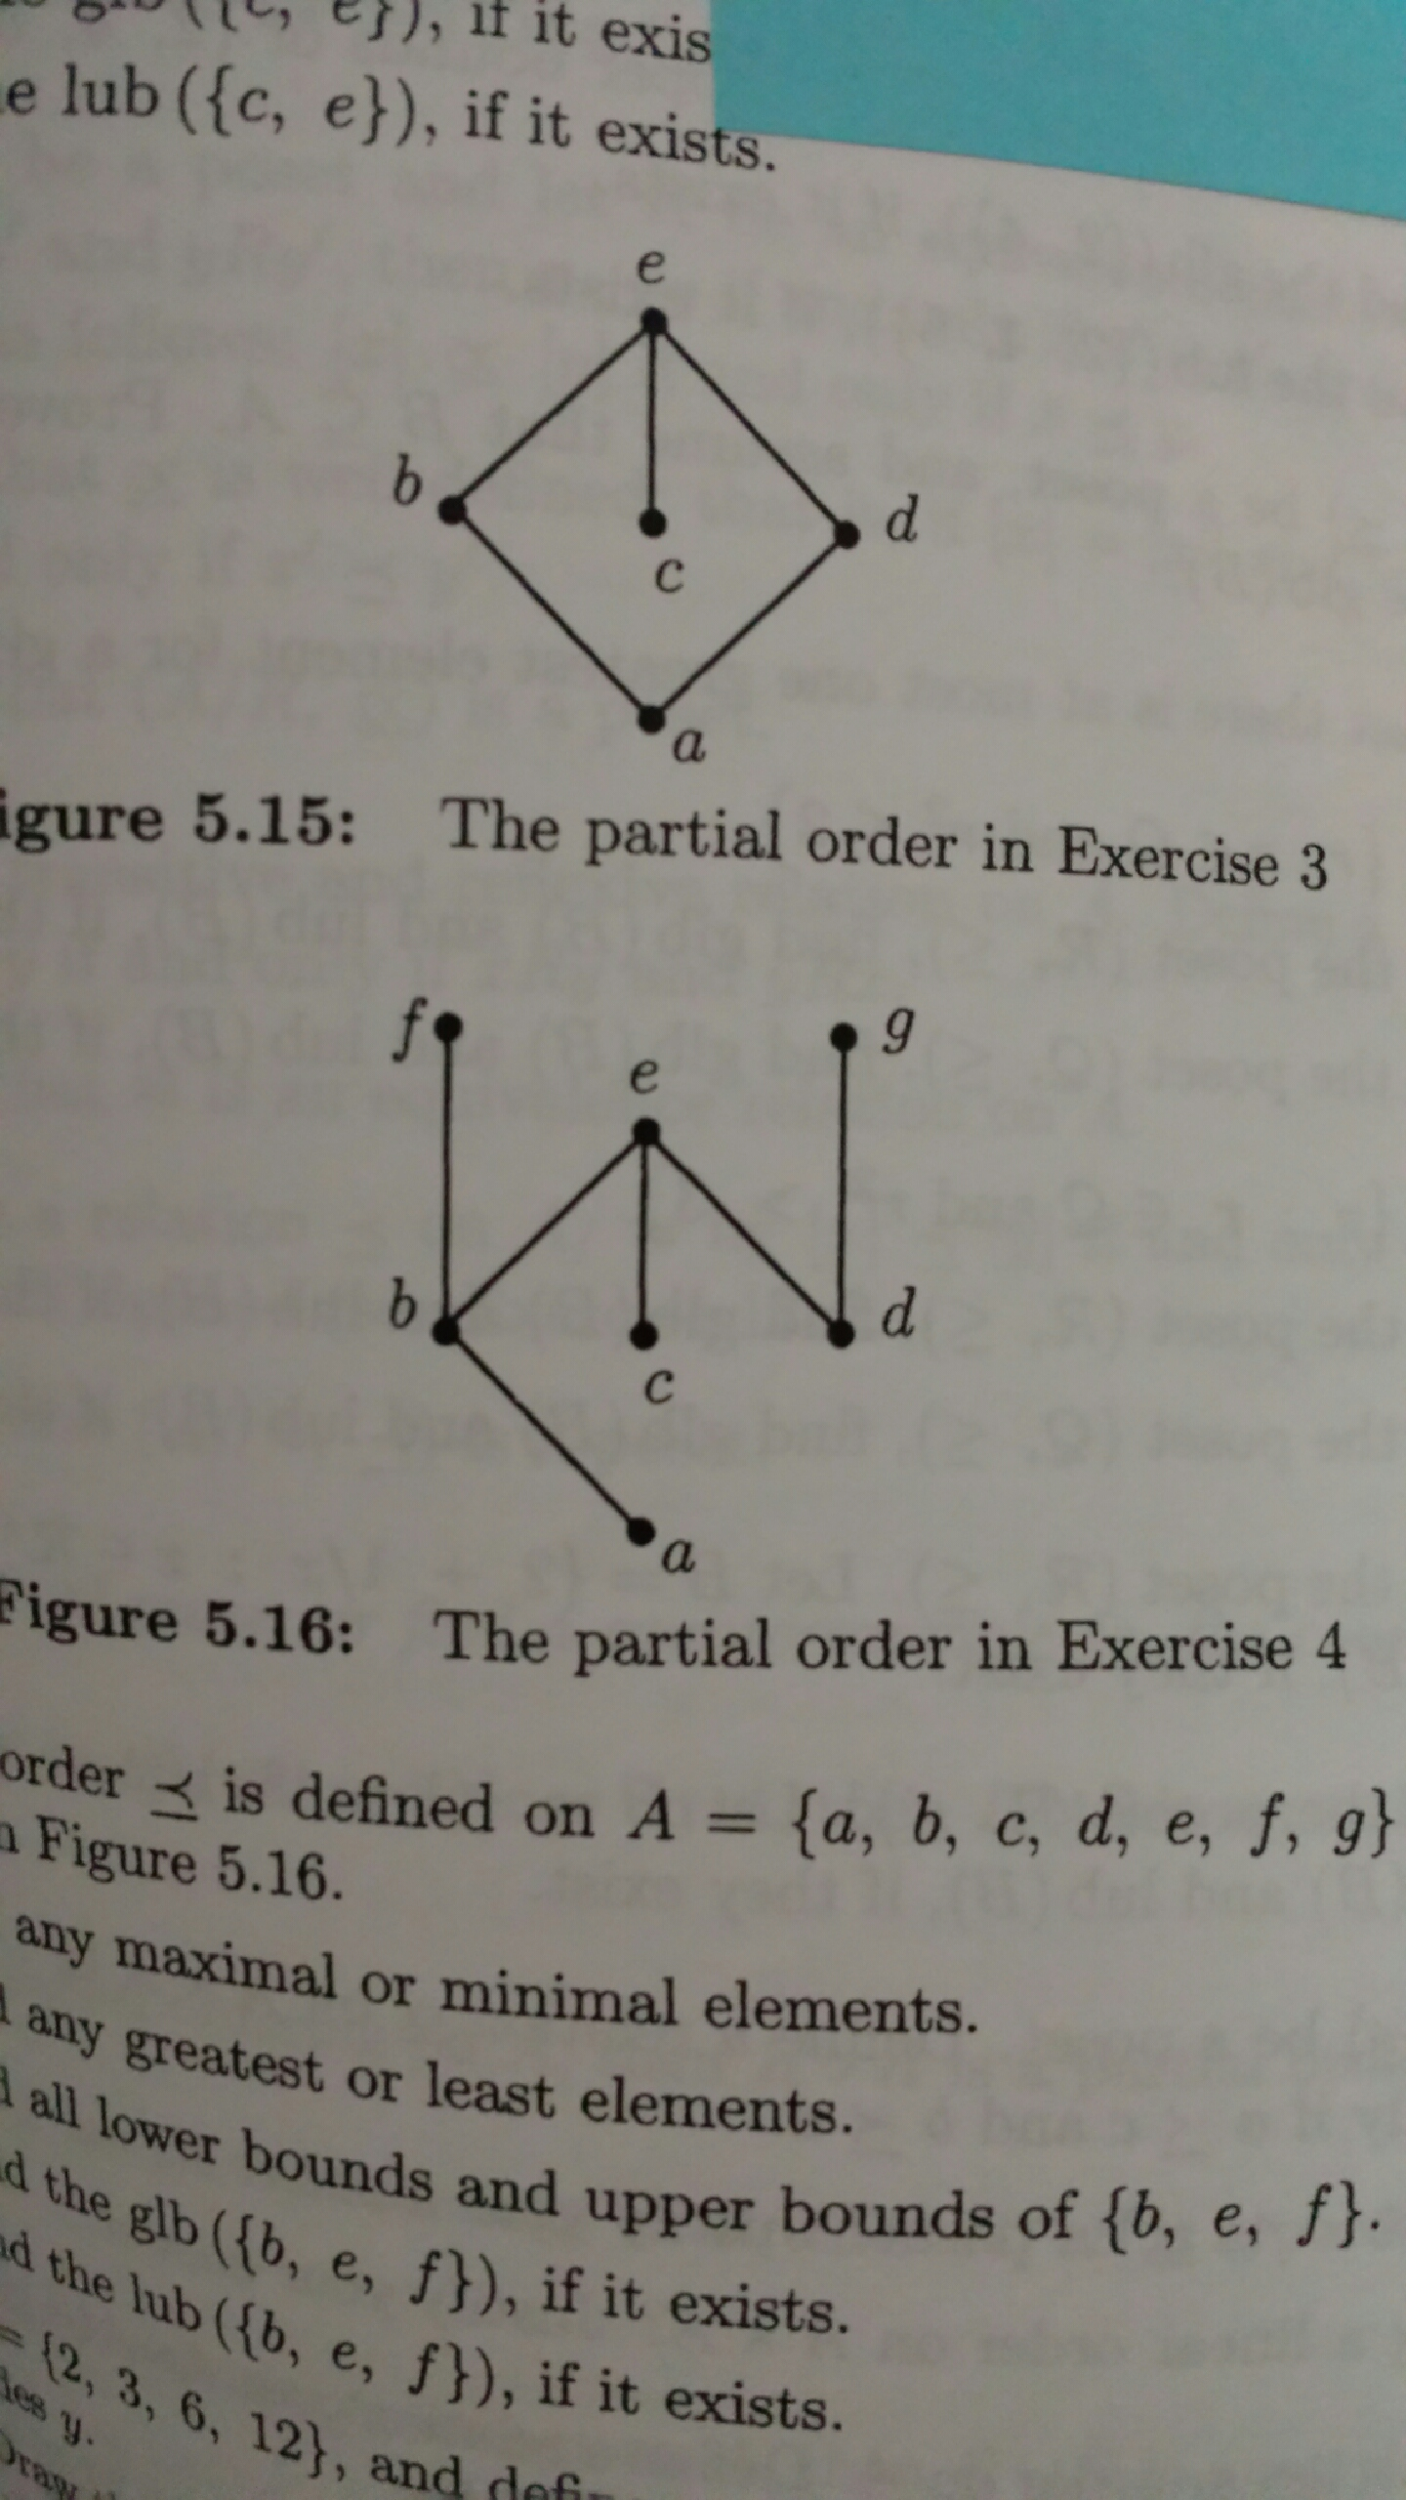 A partial order is defined on a a b c d e chegg e find the lubb e f if it exists ccuart Images